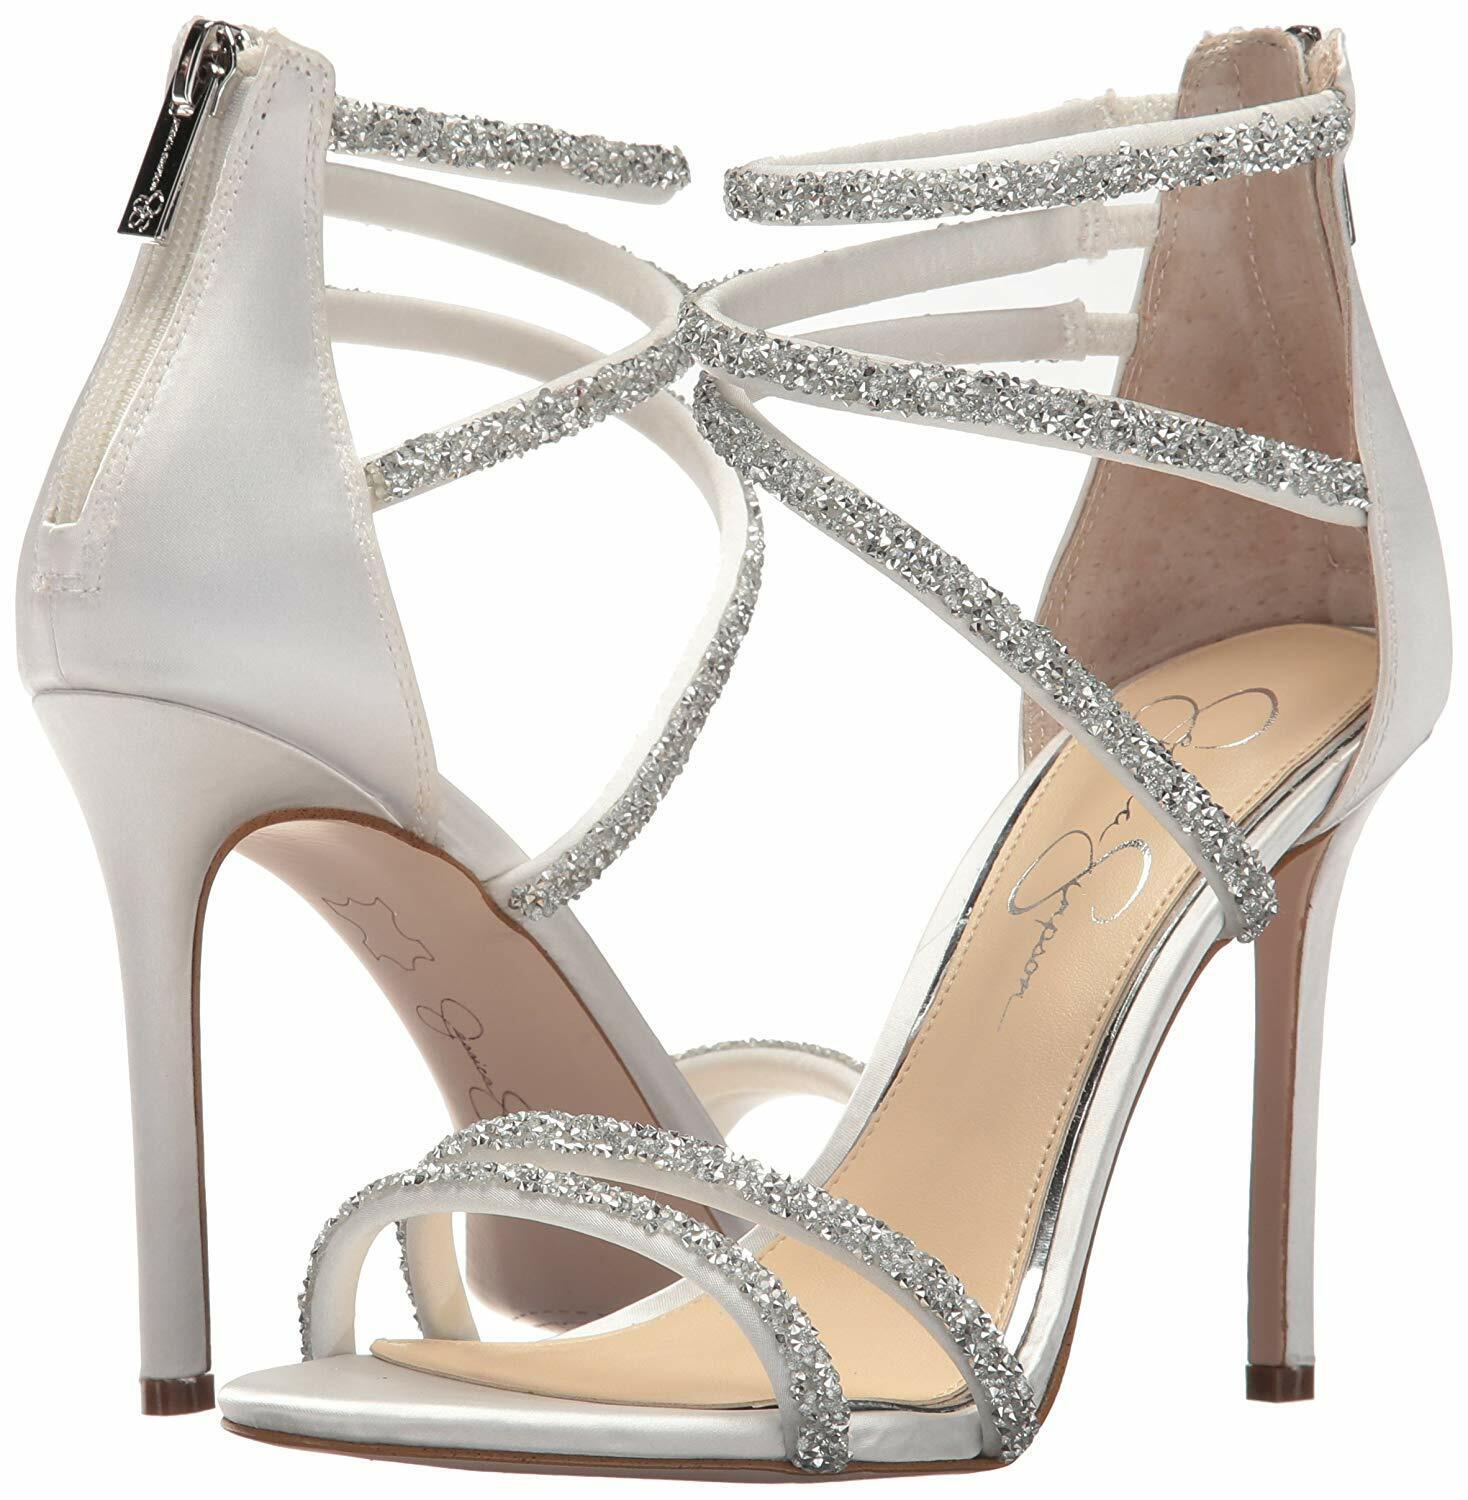 9130af18a44 Jessica Simpson Womens Jamalee Heeled Sandal White 8.5 M US for sale ...